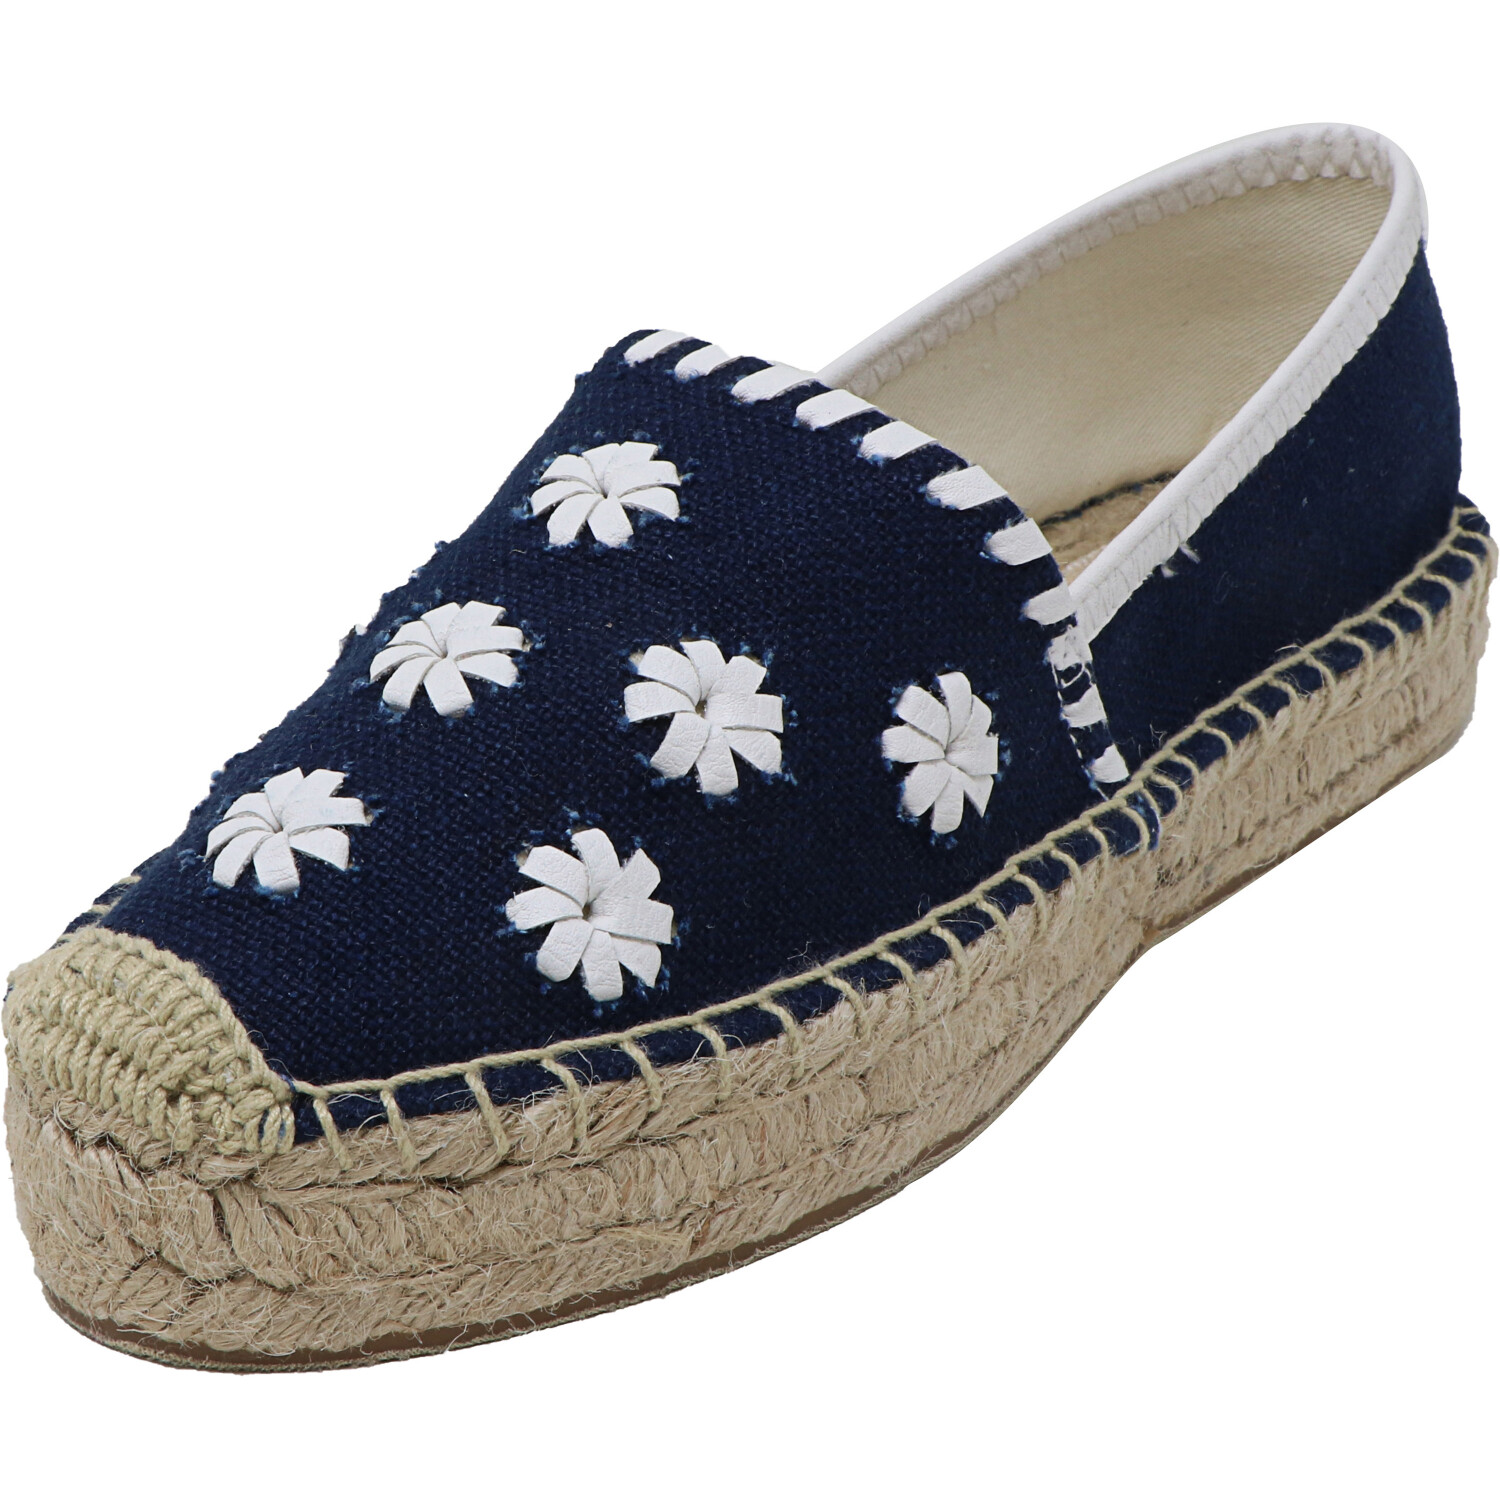 Jack Rogers Women's Palmer Espadrille Midnight / White Ankle-High Fabric Slip-On Shoes - 6.5M